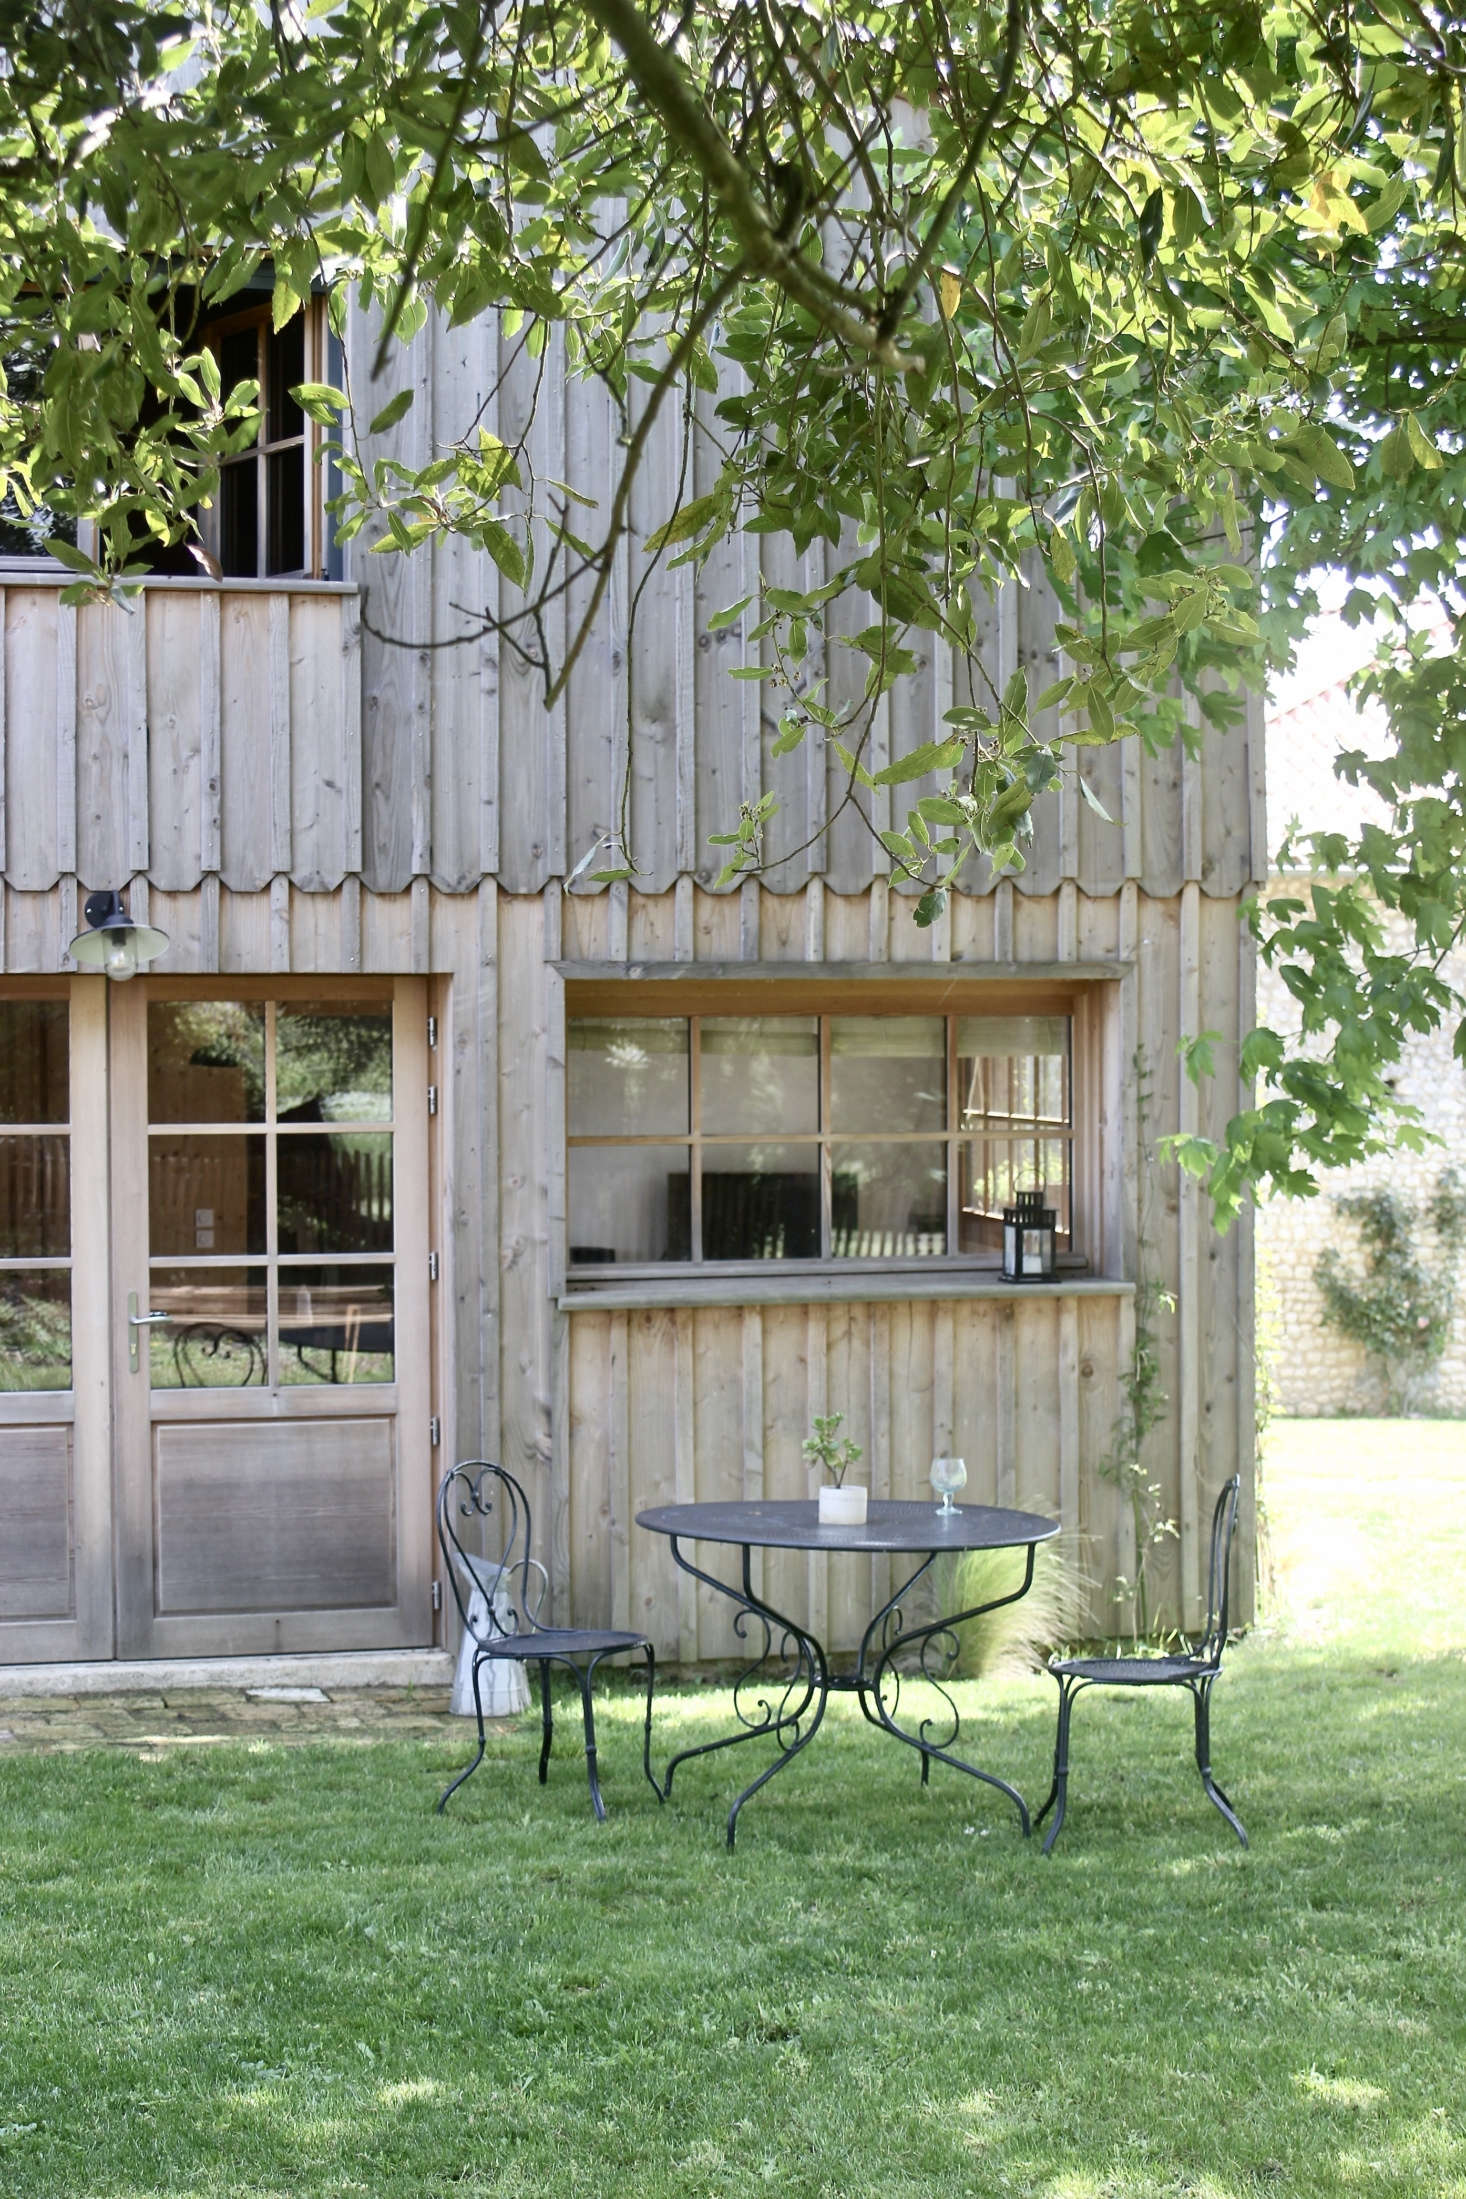 Justine and Jean redesigned what had been a bake house dating from the early th century into a board-and-batten cottage inspired by the fisherman&#8